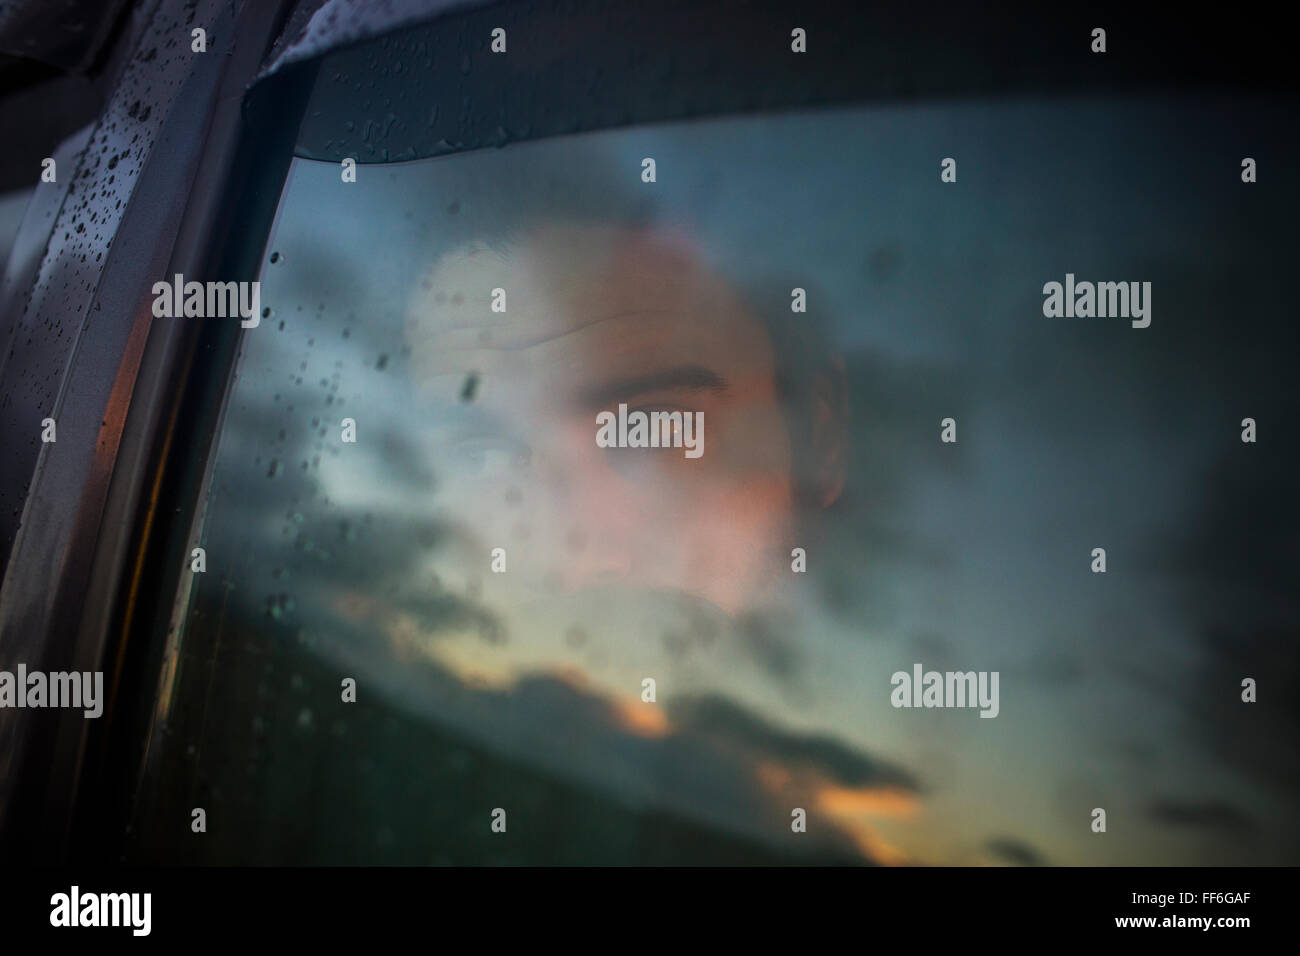 A man sitting in a car looking out. Reflections of the sunset sky on the window. - Stock Image